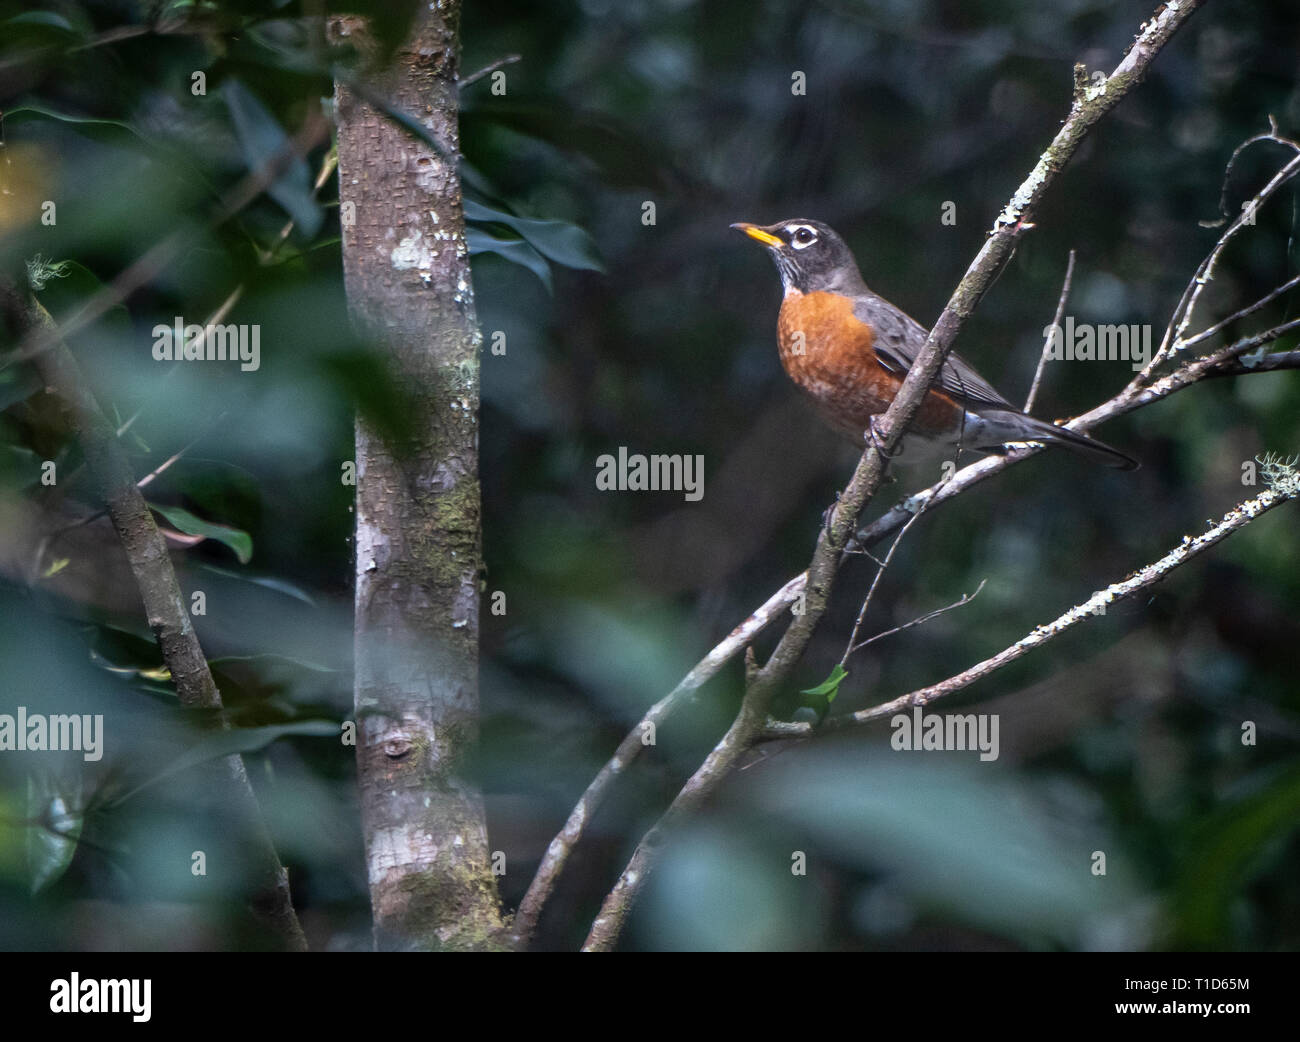 Migrating Robin bird perched on laurel cherry tree - Stock Image